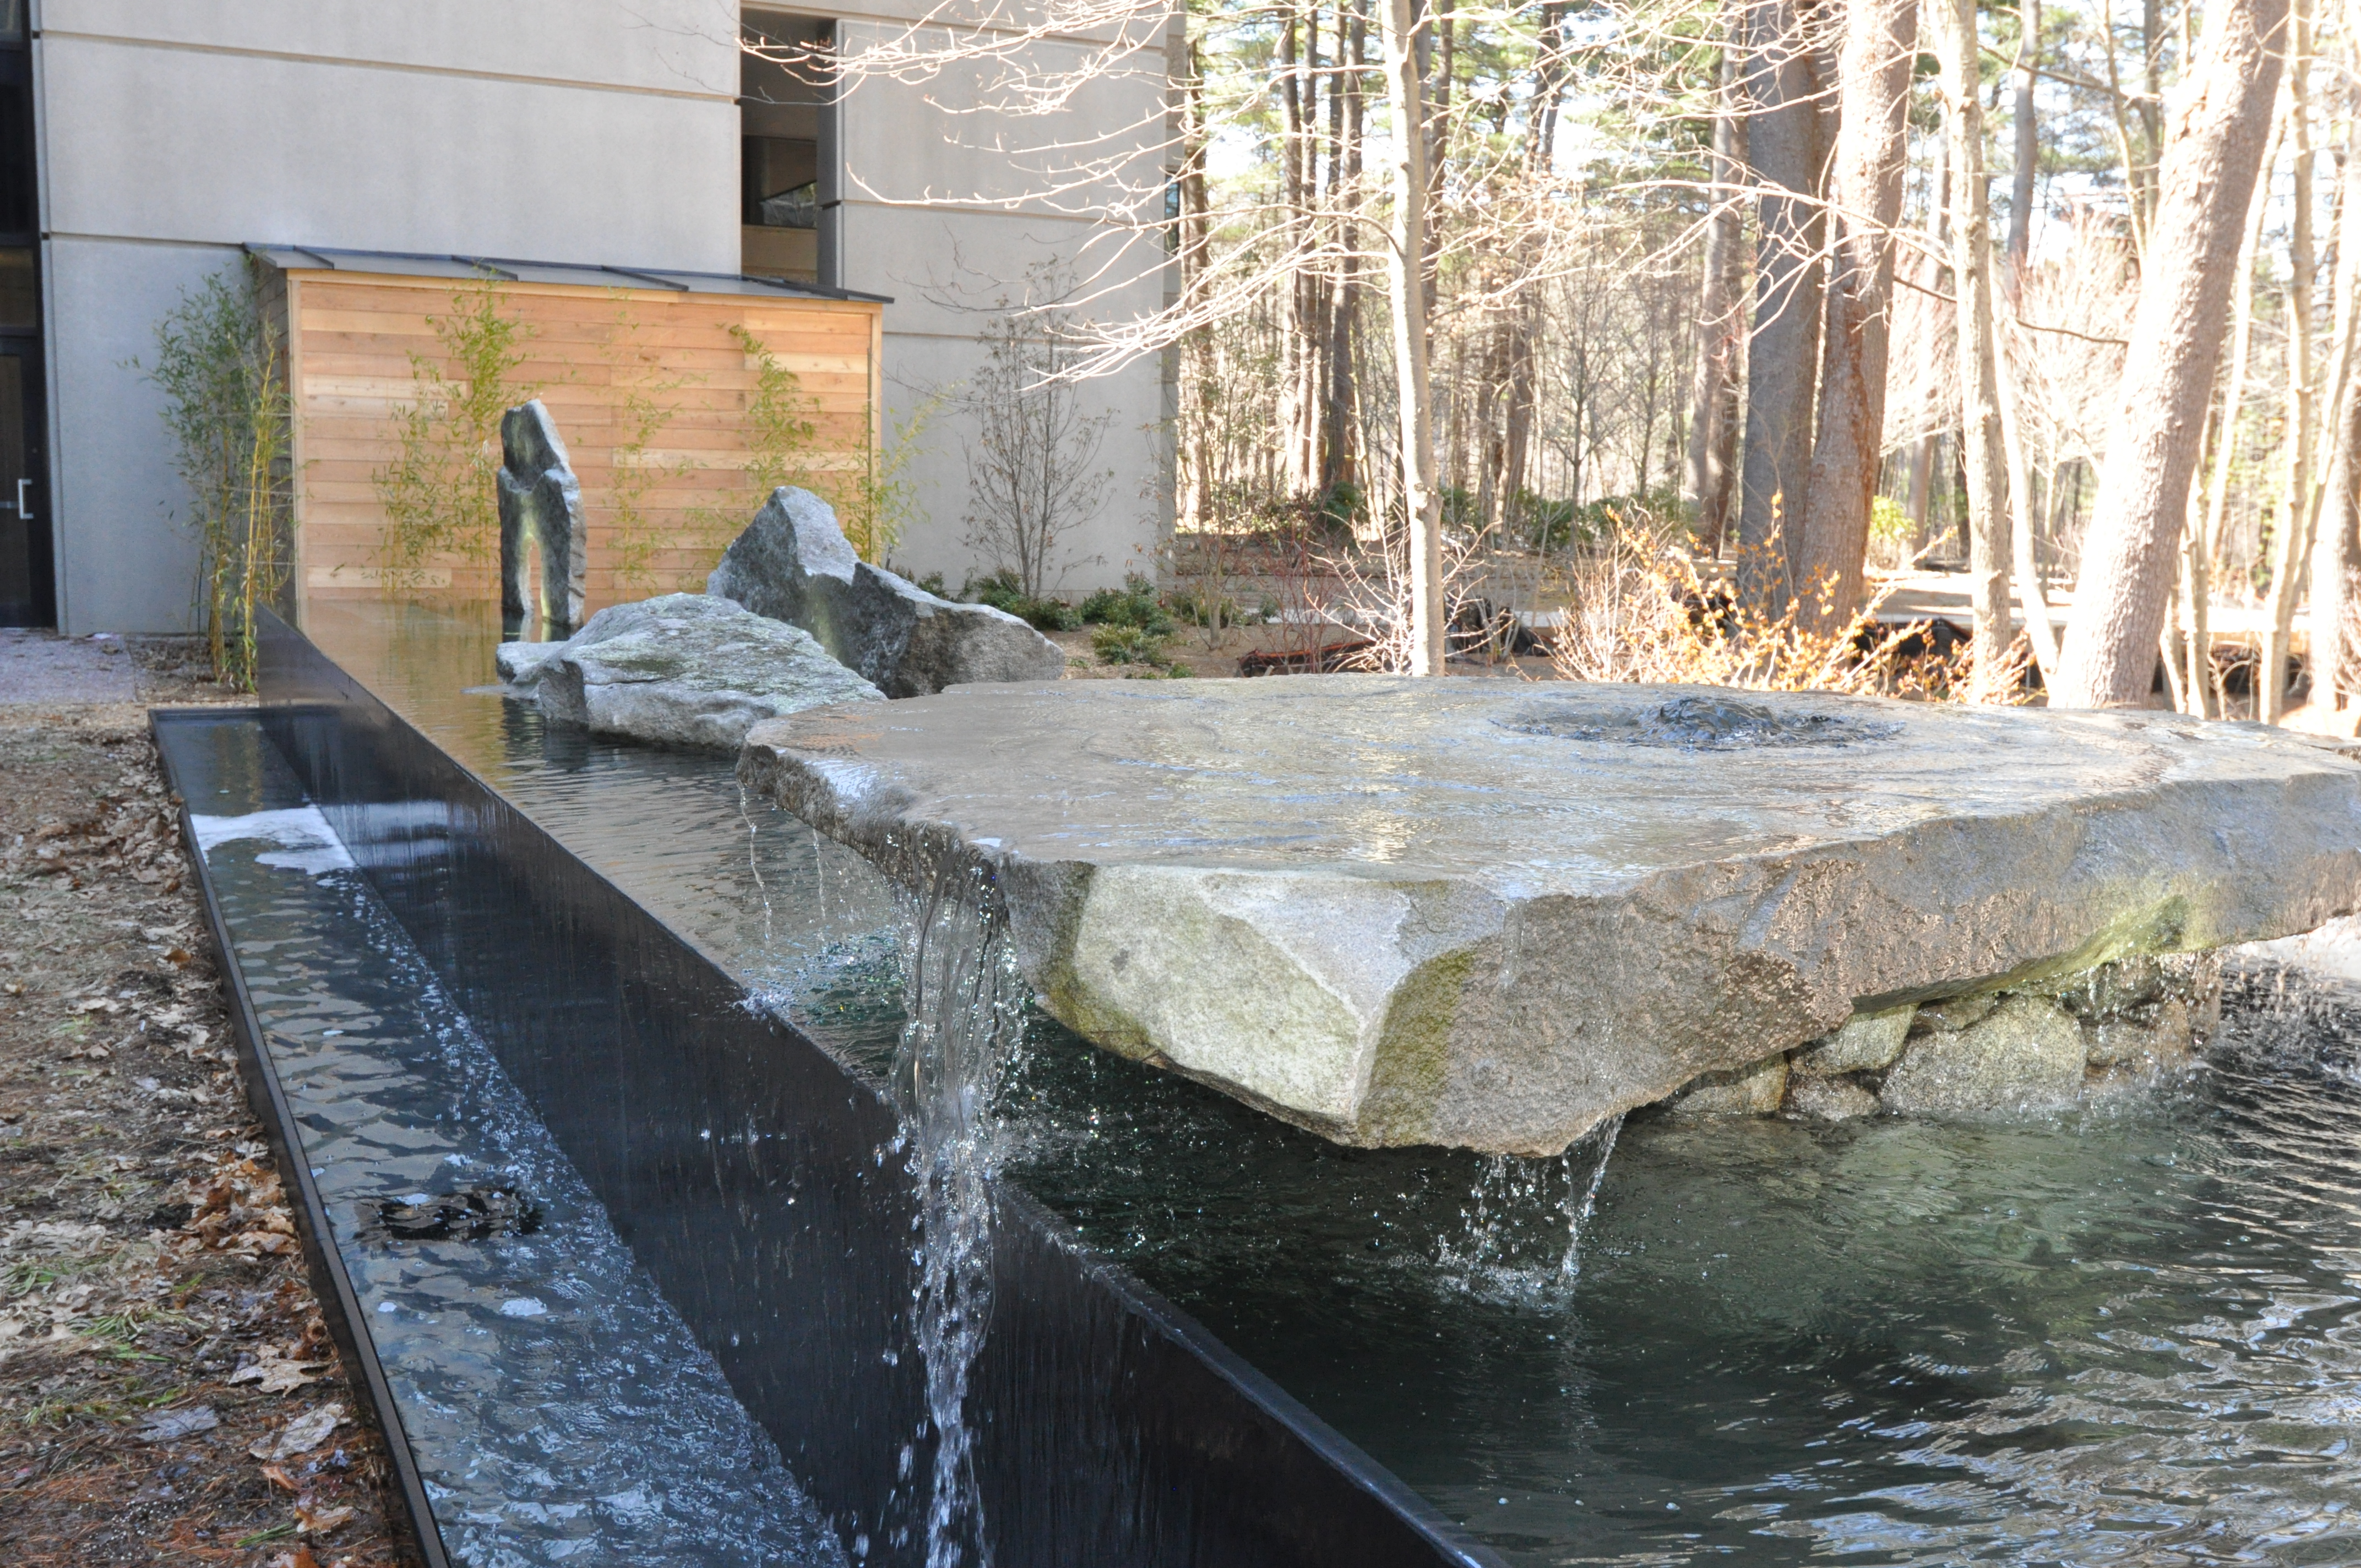 Negative edge water feature with found art stones, Oracle, Bedford MA. Design by Thomas Wirth Associates. Architectural Stones by Lew French.